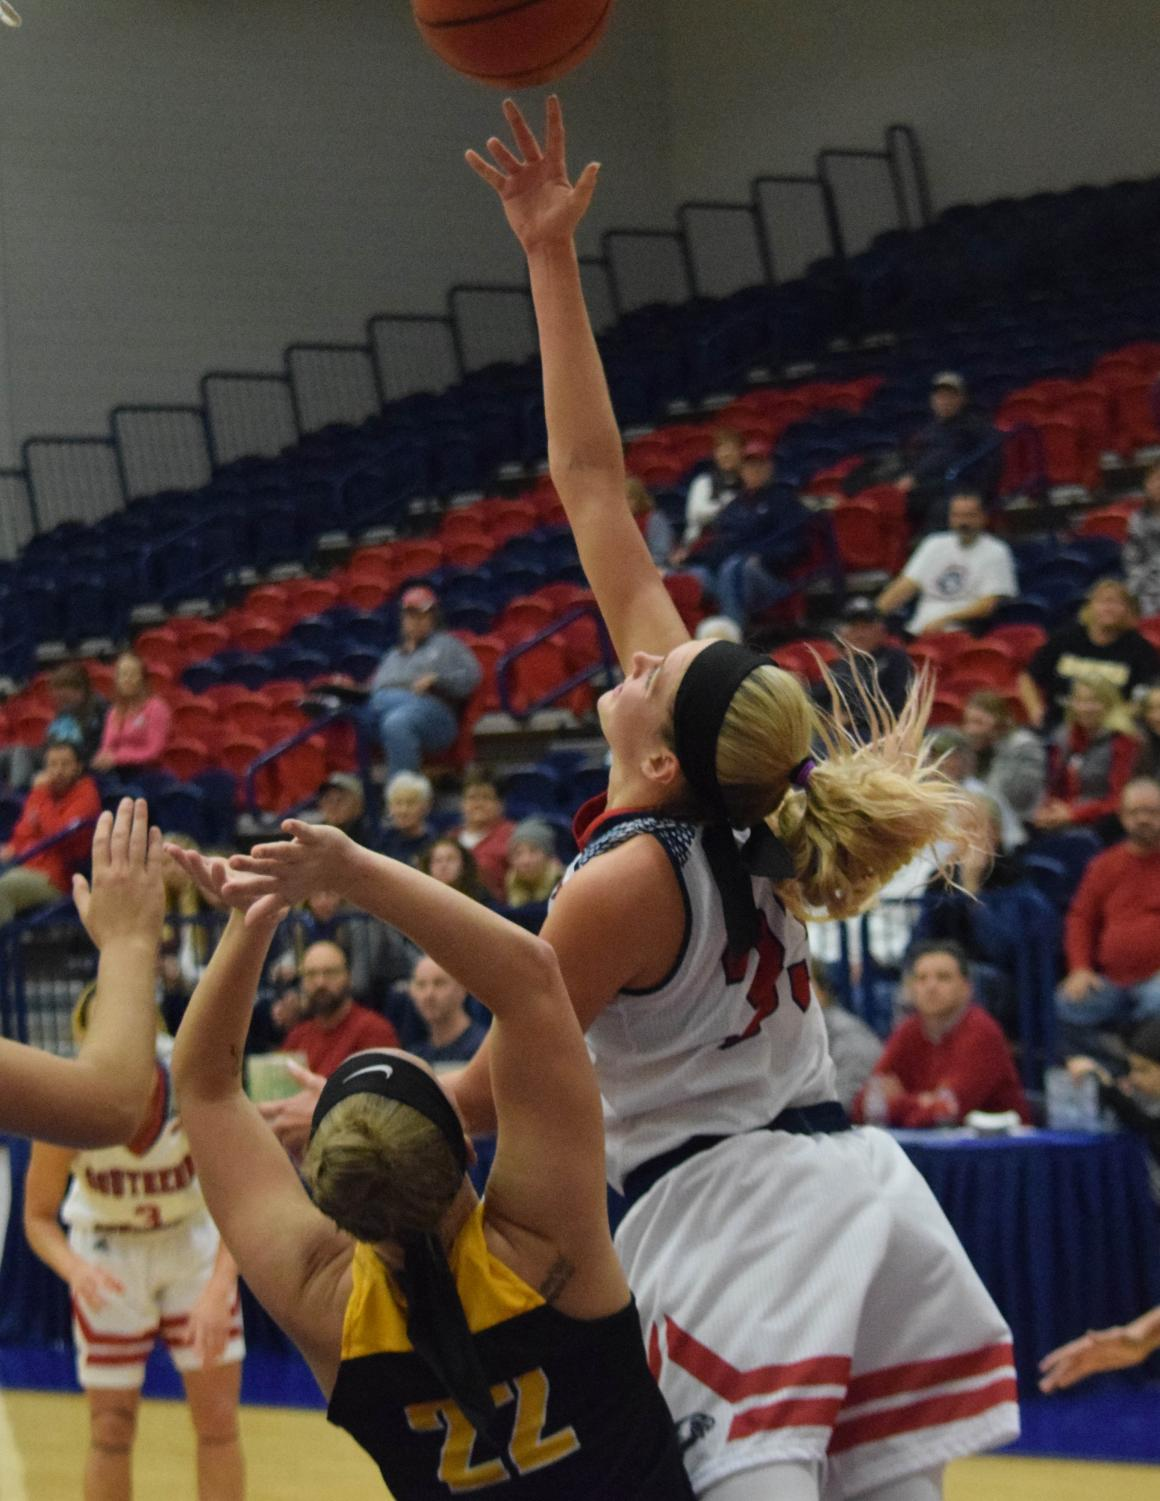 Kaydie+Grooms%2C+senior+forward%2C+goes+up+for+a+reverse+layup.